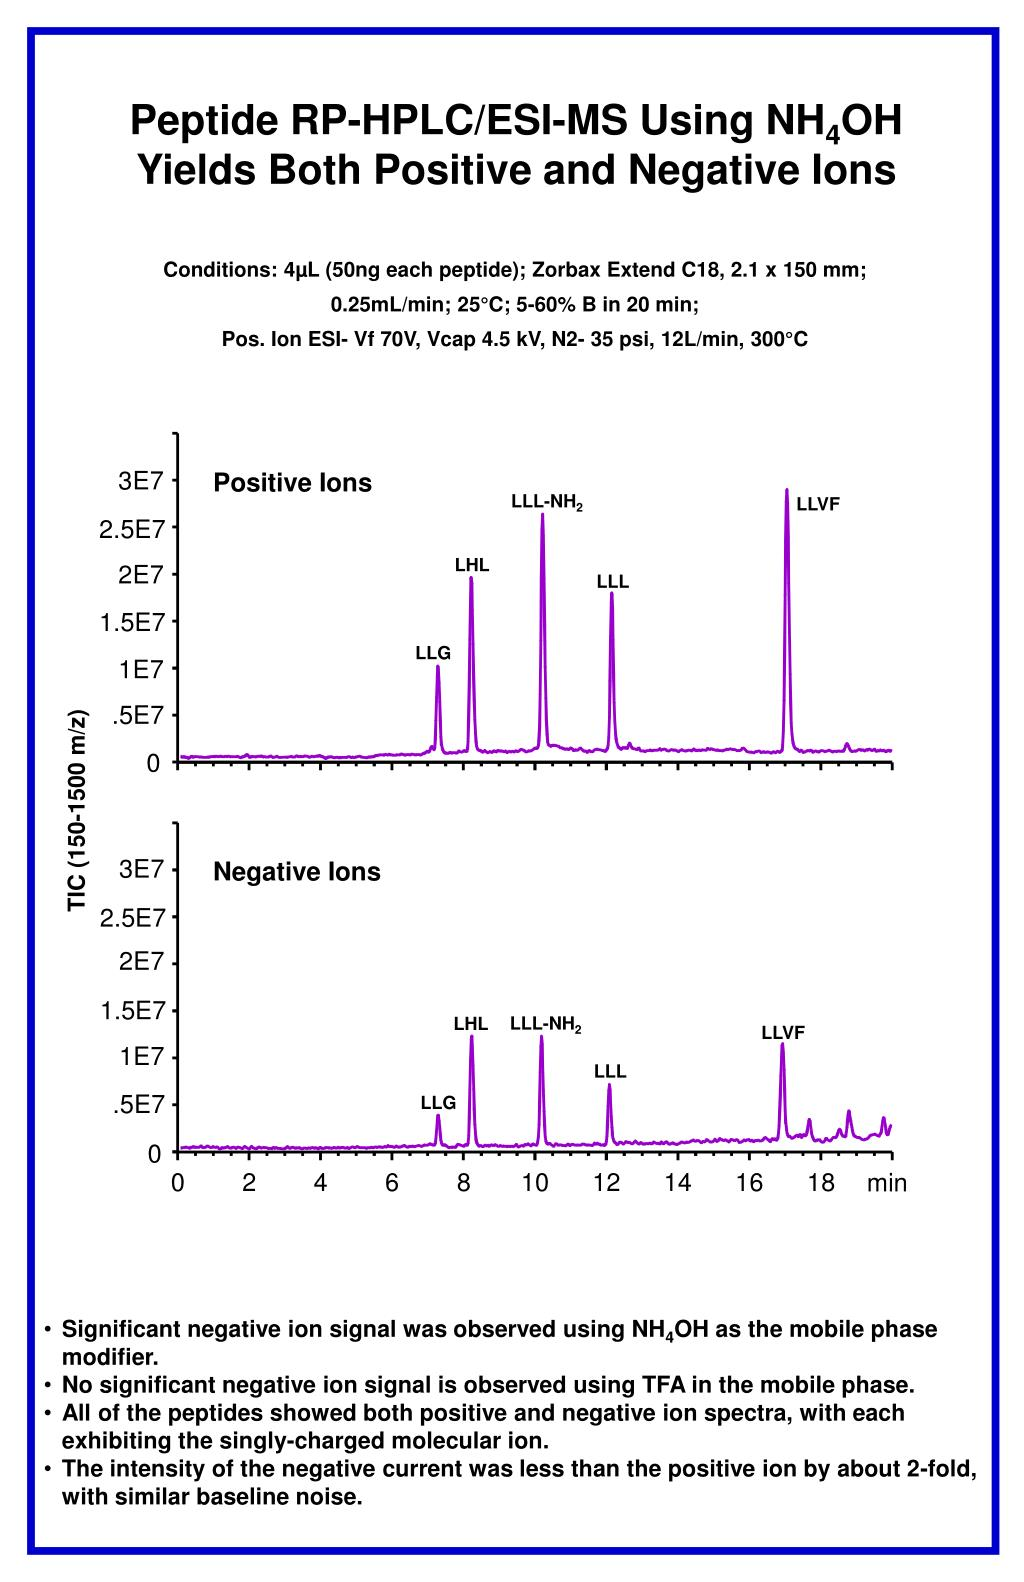 Peptide RP-HPLC/ESI-MS Using NH